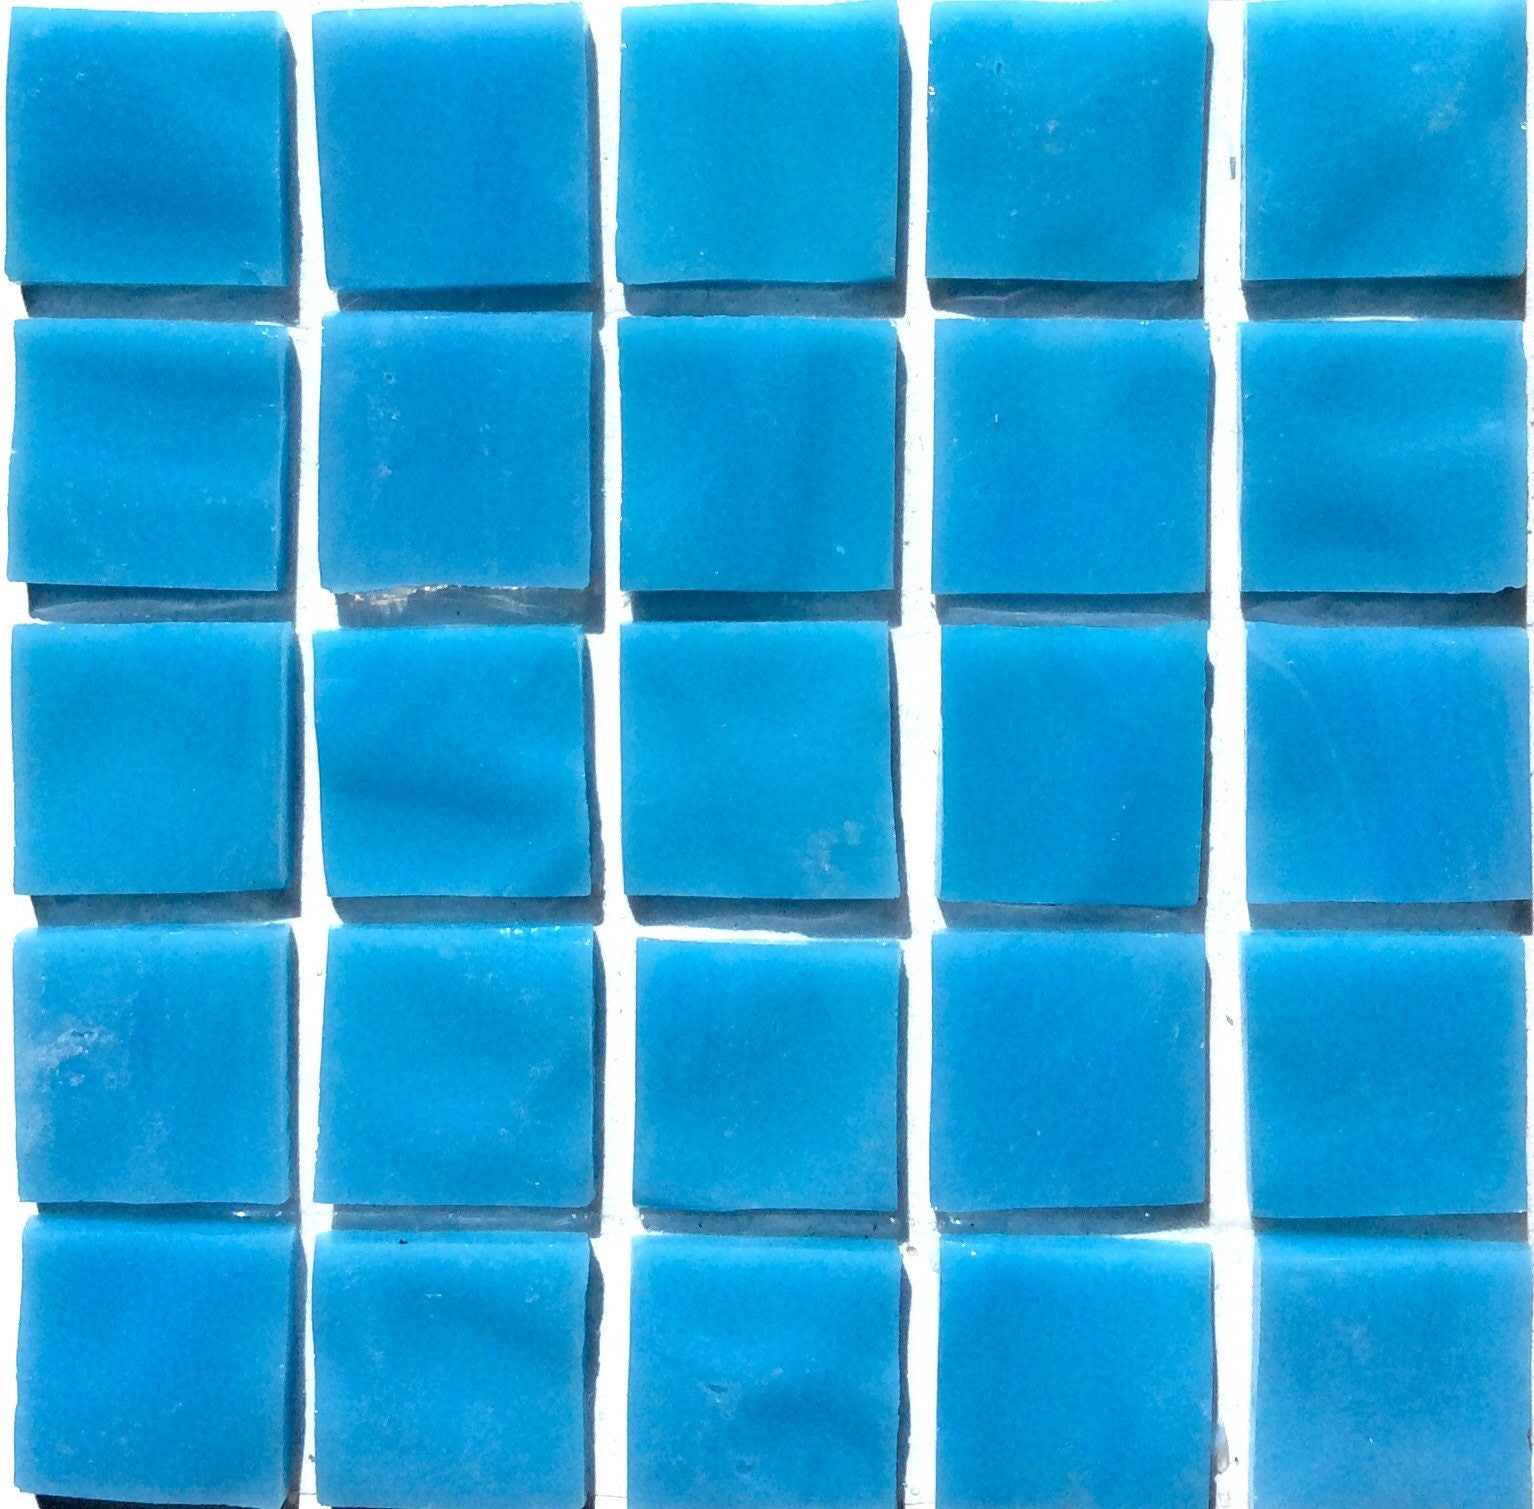 20mm 3/4 Turquoise Blue TIFFANY Stained Glass Mosaic